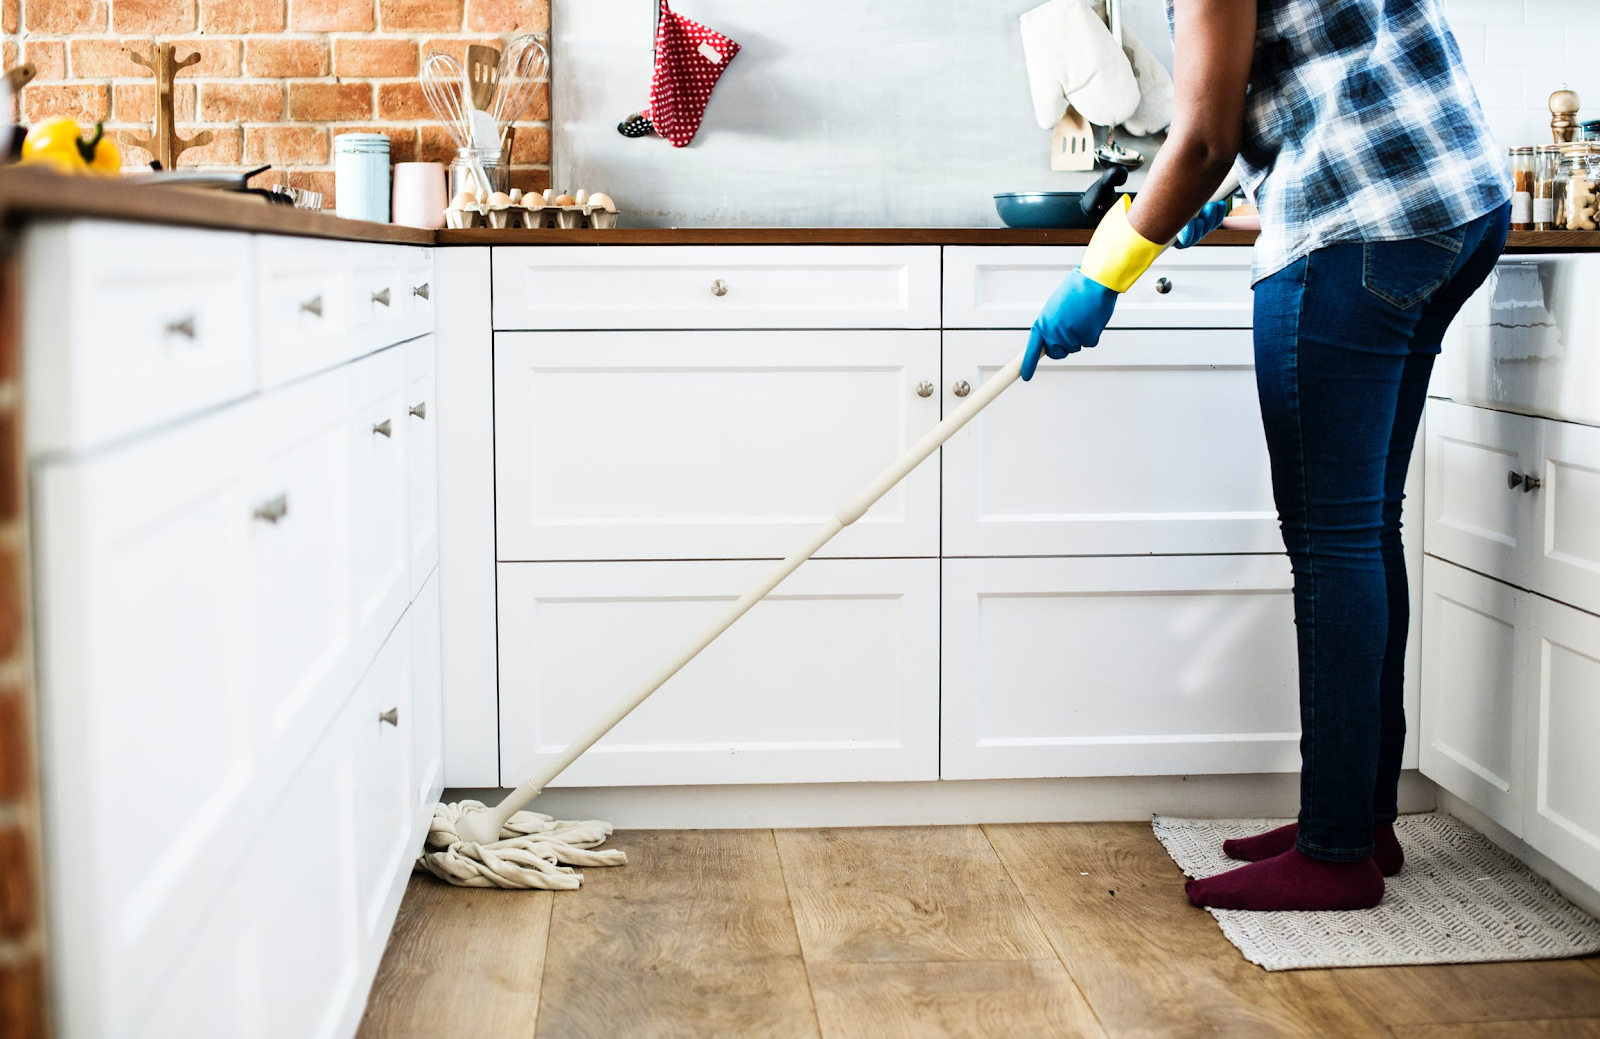 Cleaning the kitchen with a mop